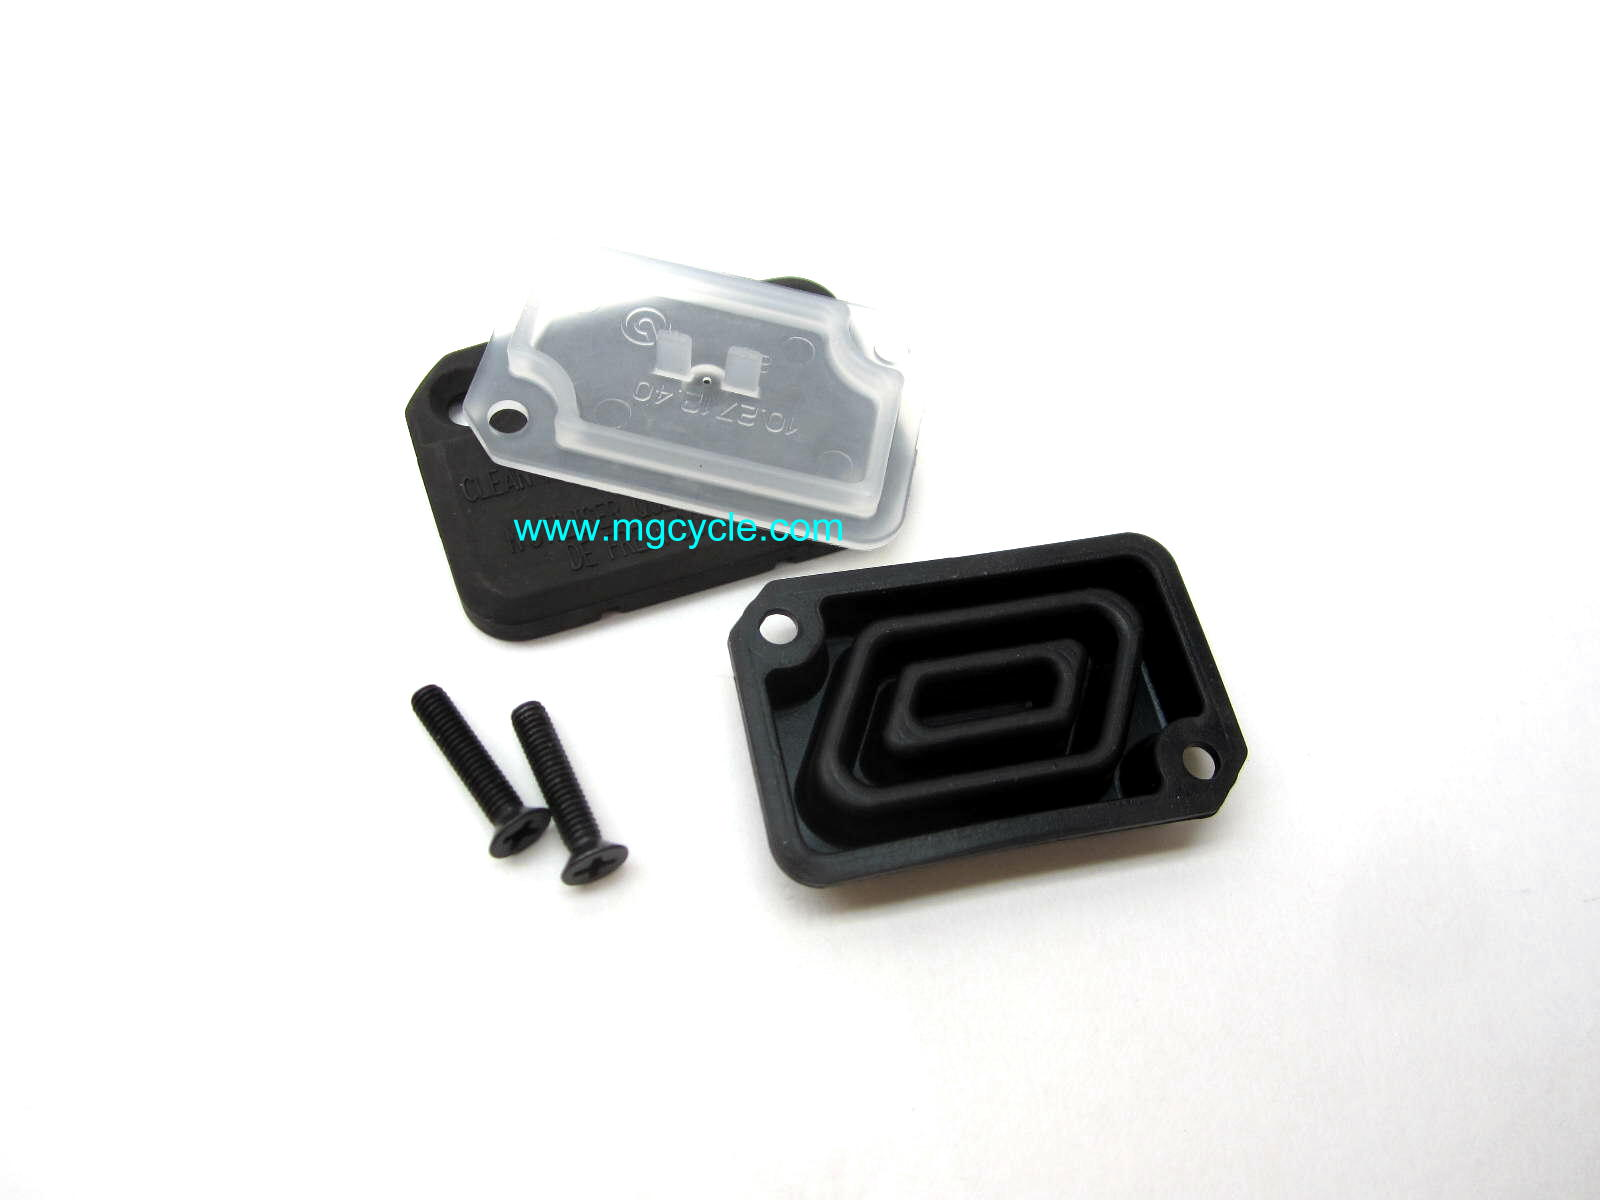 Brembo master cylinder lid kit for many 2001 and later models